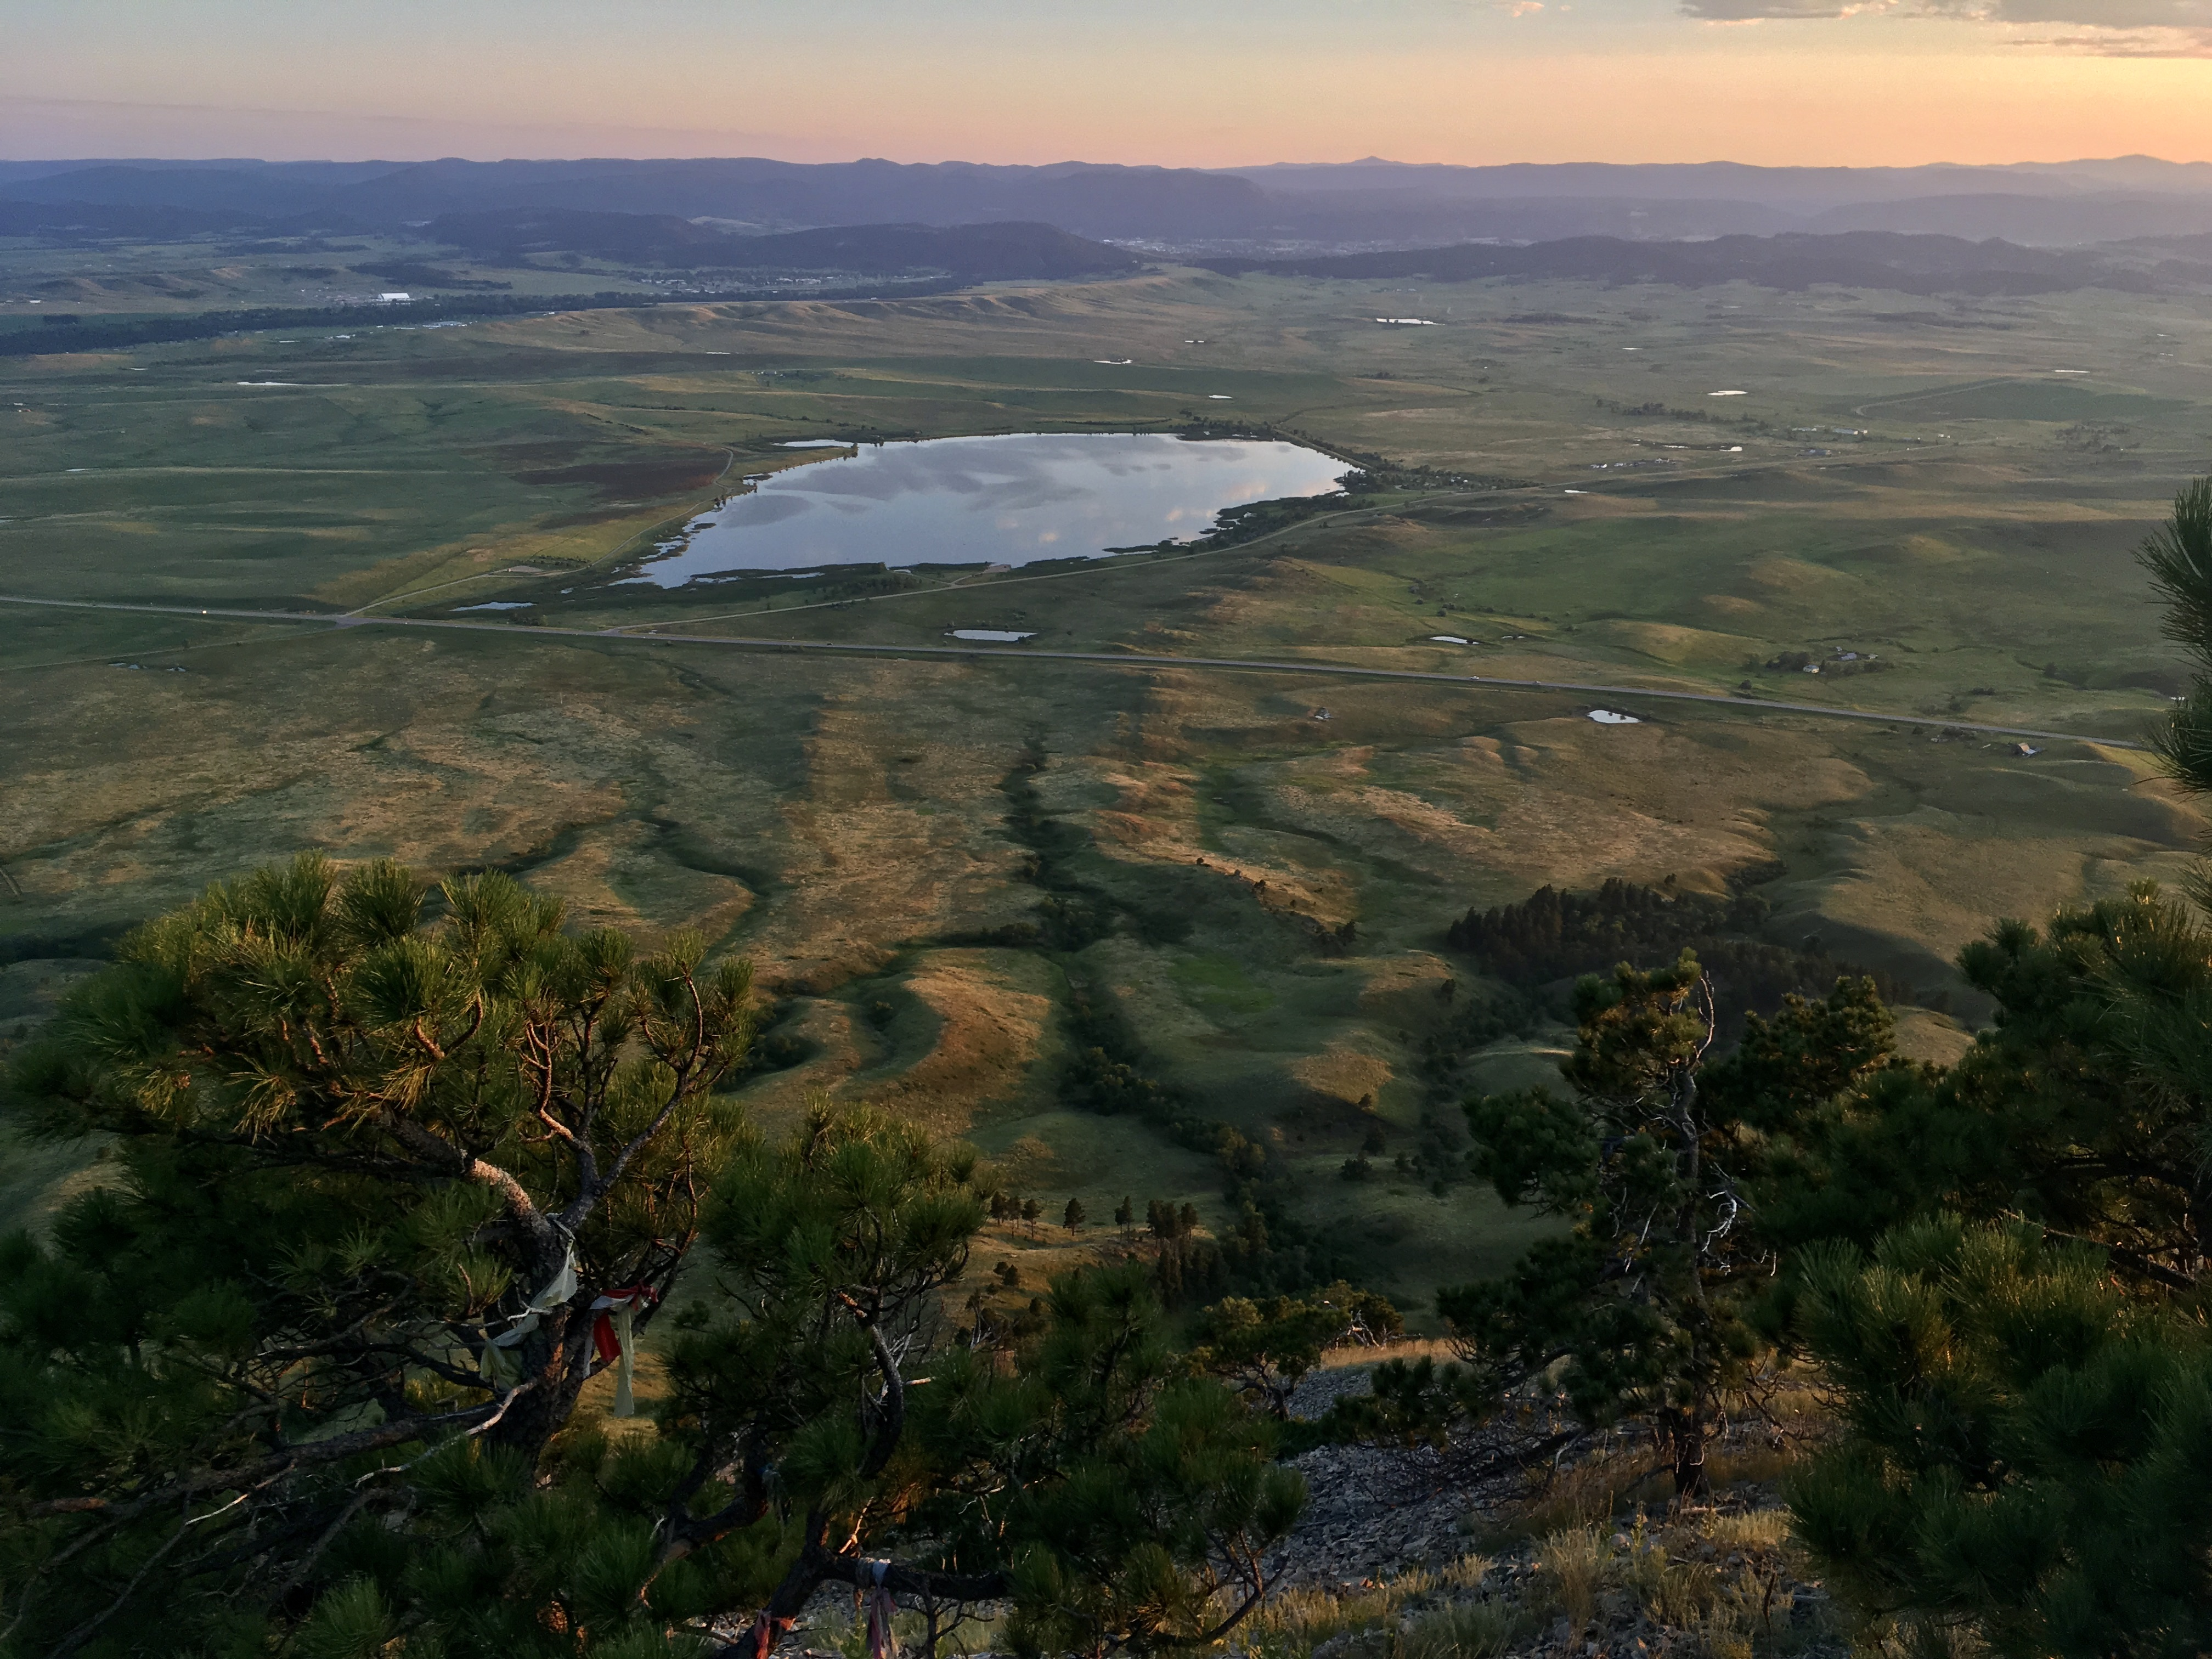 Looking west toward Sturgis from the summit of Bear Butte, SD (northern terminus of GPT pilot trail and Centennial Trail) at sunset.